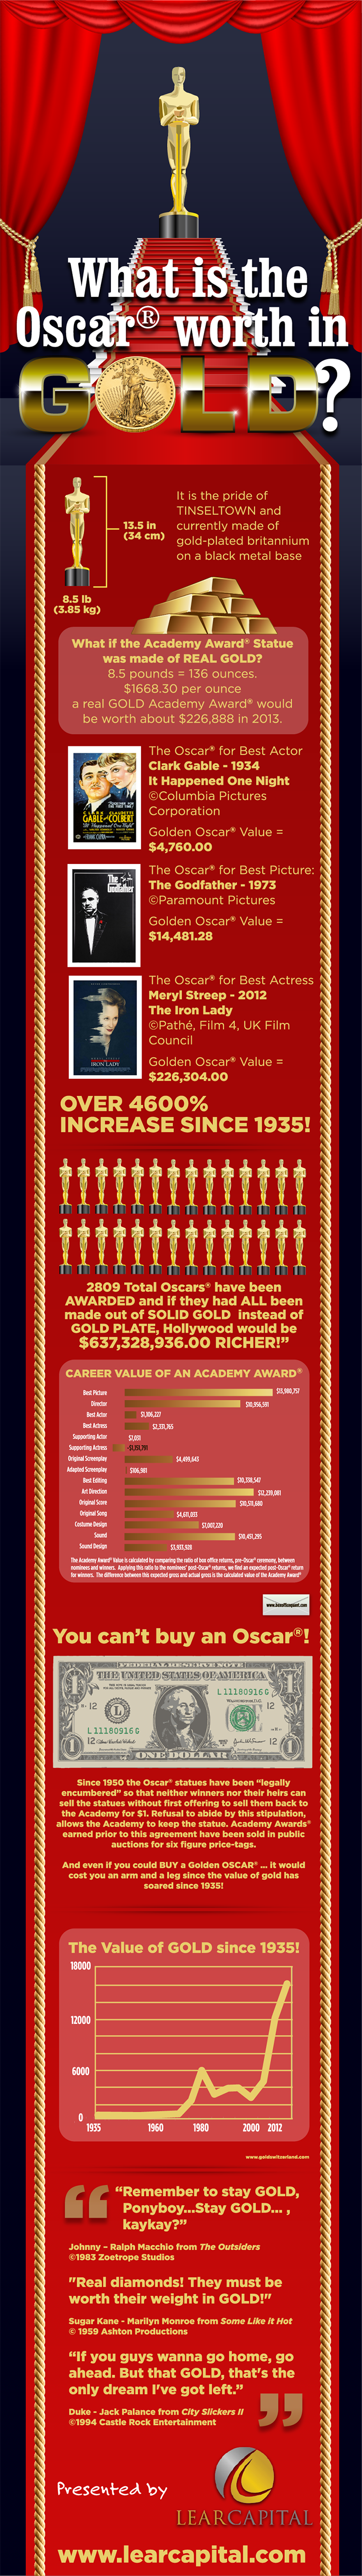 oscar trophy gold worth